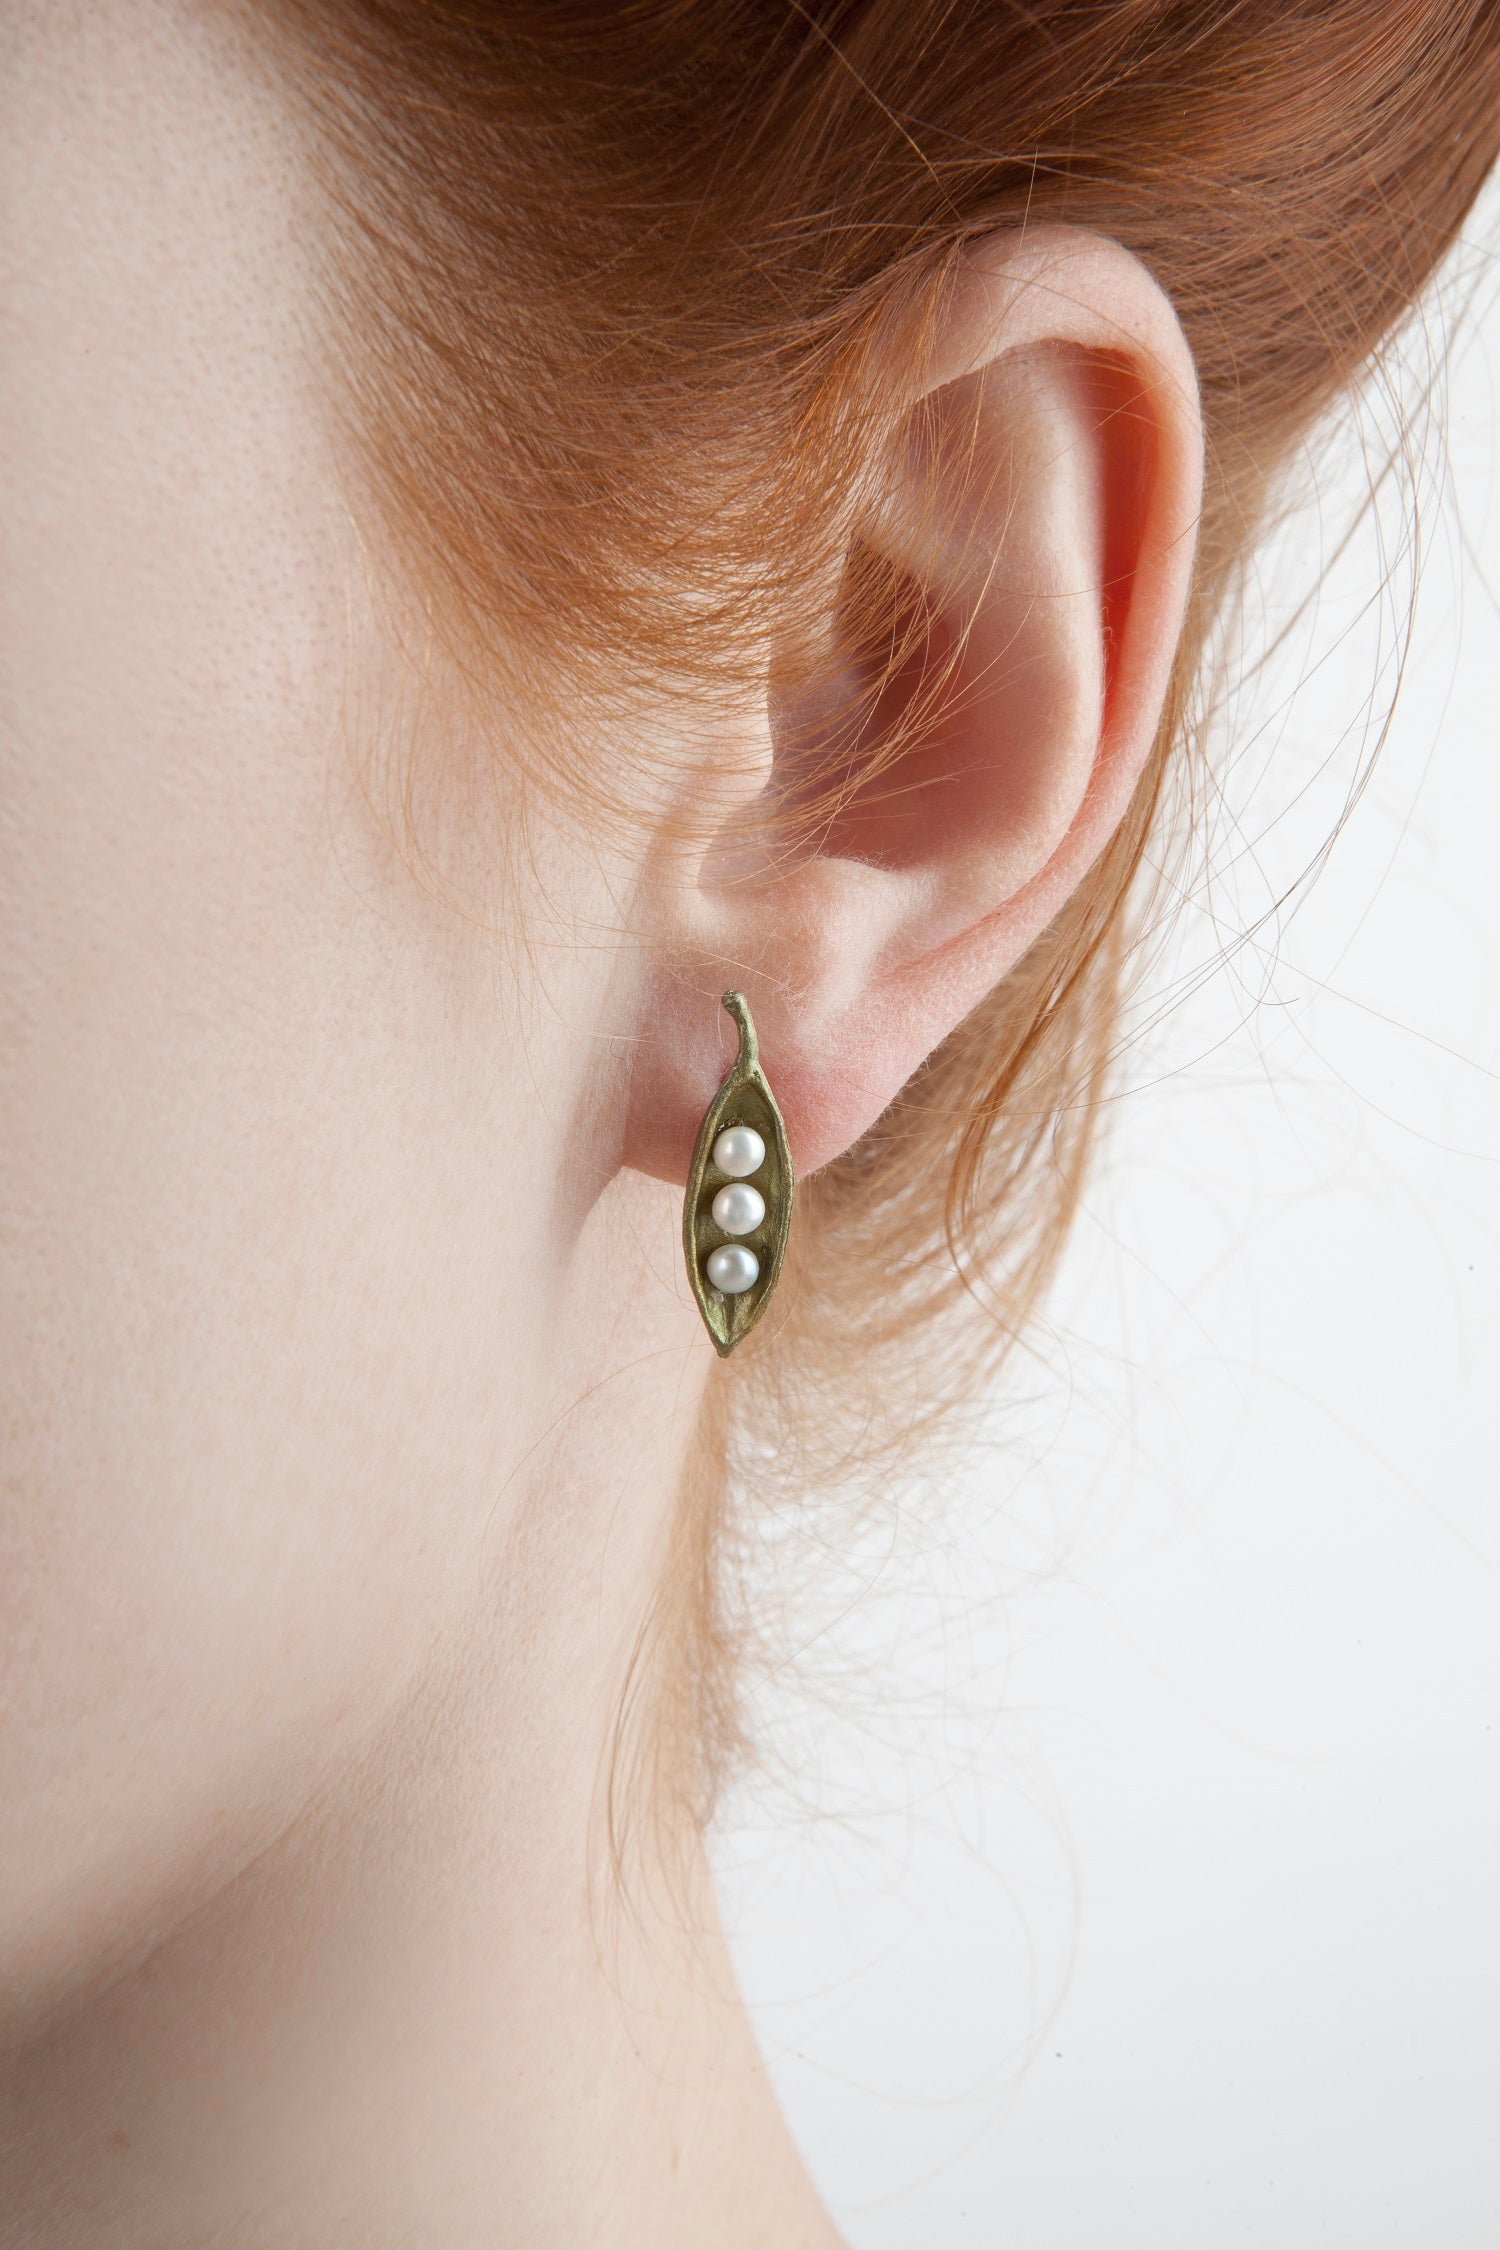 Pea Pod Earrings - Petite Post